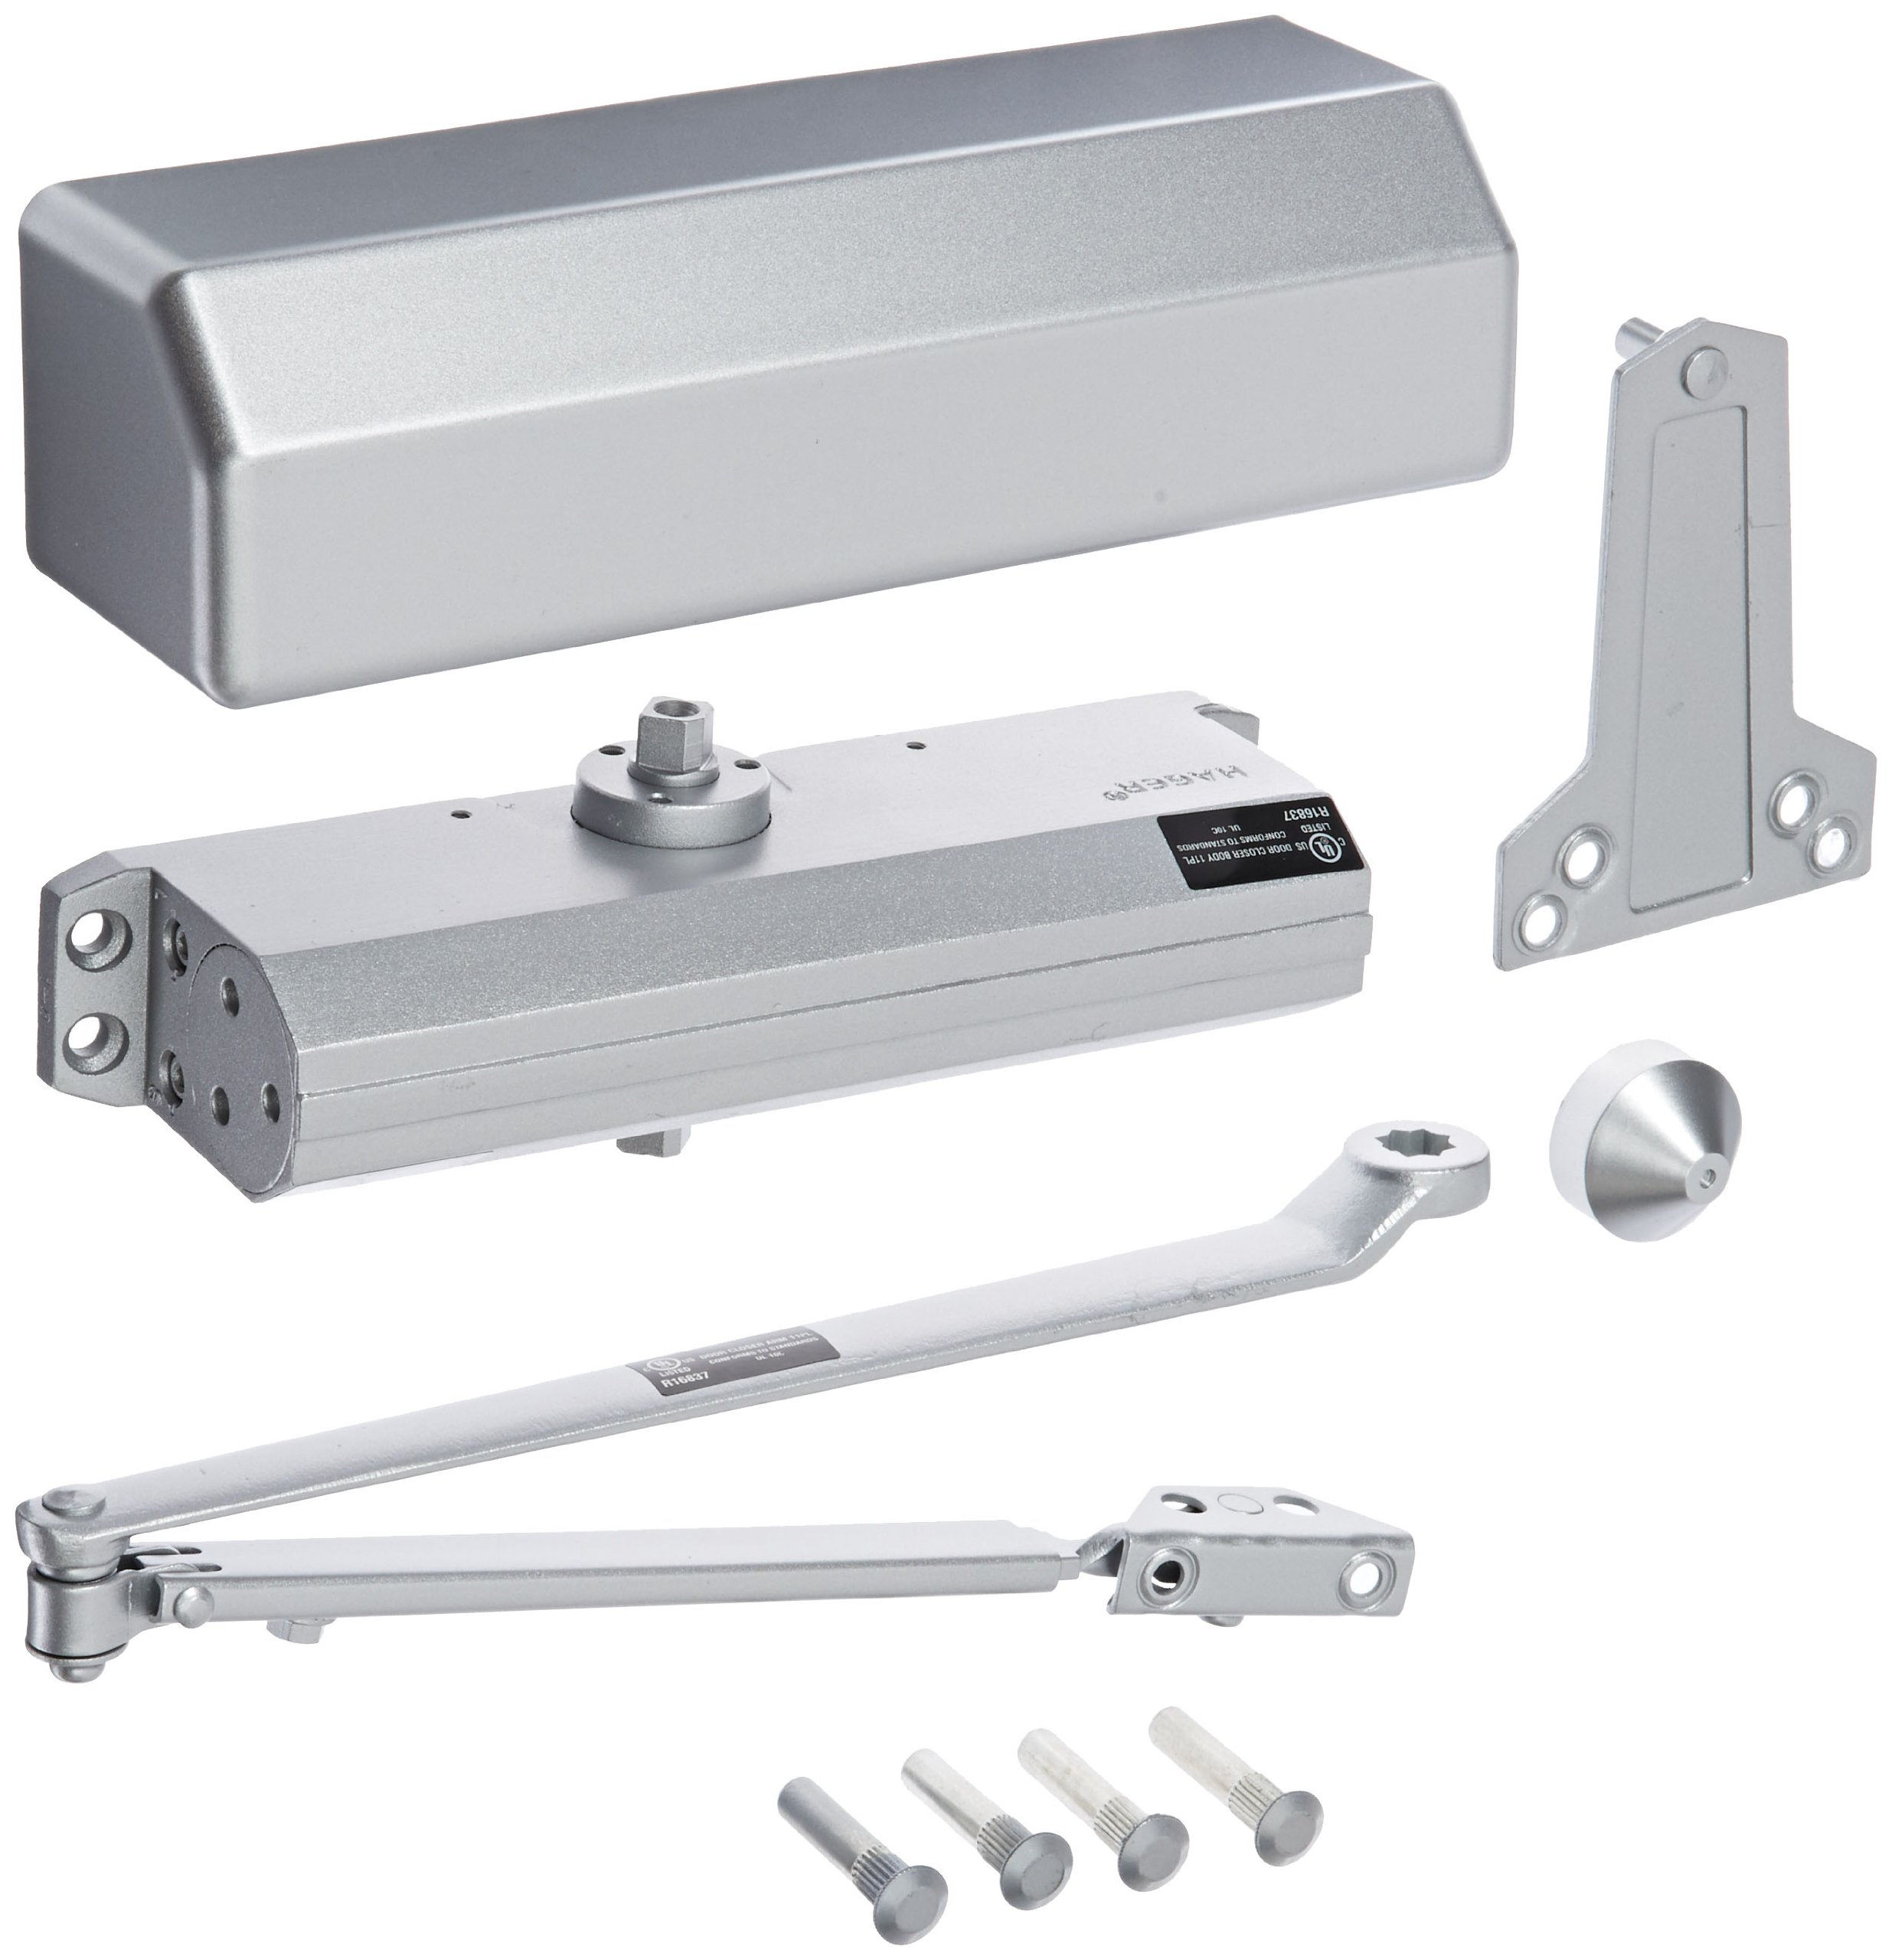 Hager 5300 Series Aluminum Grade 1 Heavy Duty Surface Door Closer, Multi-Mount, 1–6 Adjustable Spring Size, Sprayed Aluminum Finish